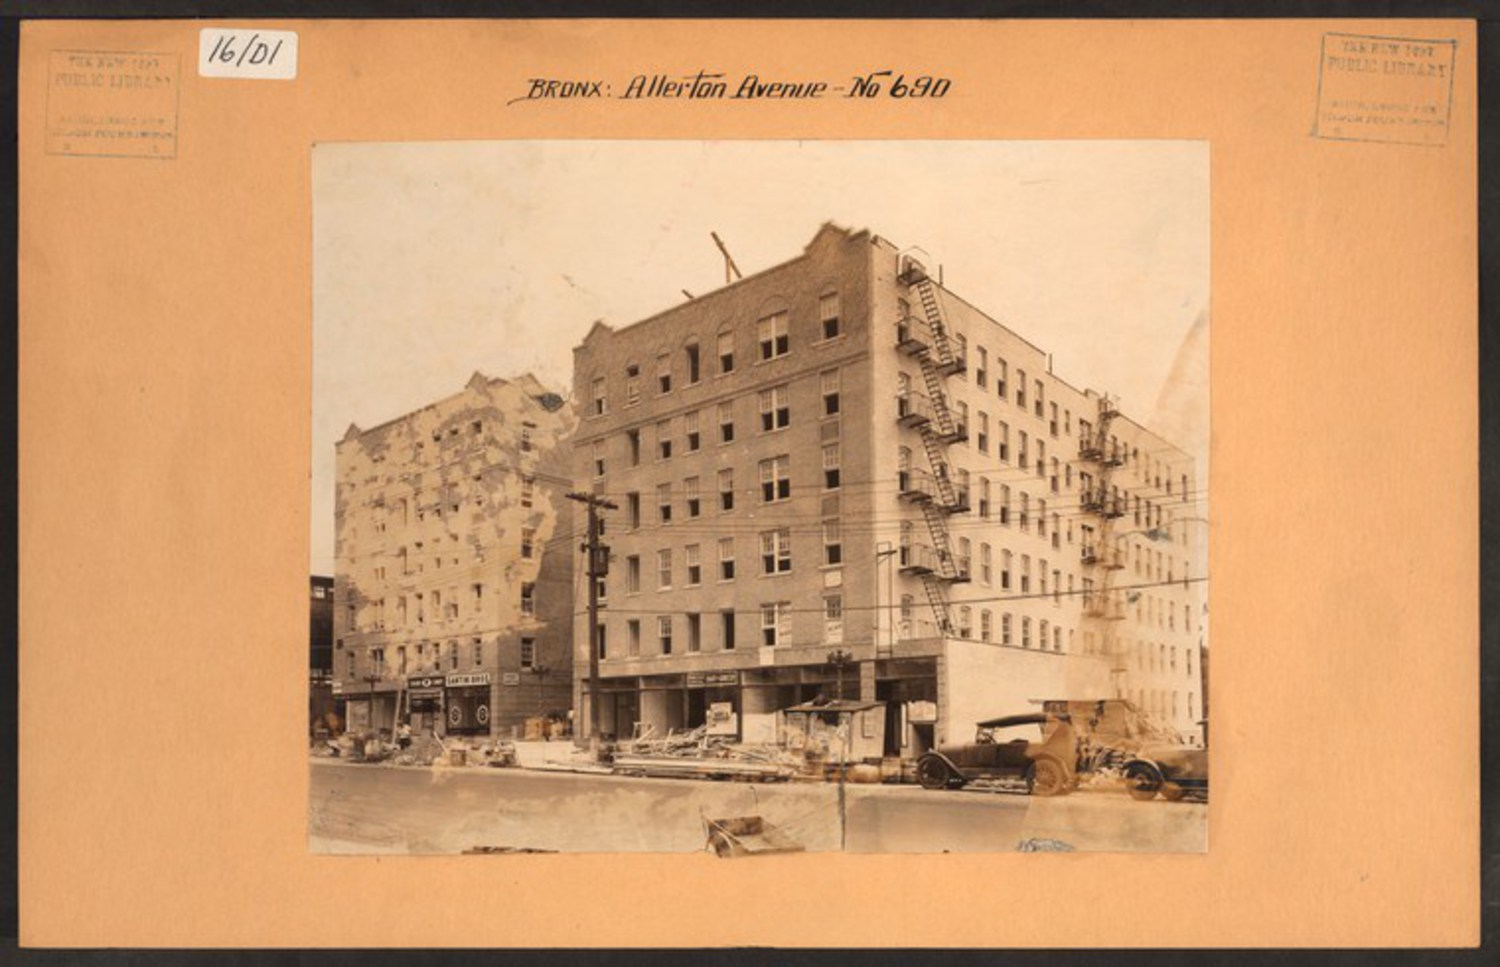 "Apartment buildings under construction along Allerton Avenue and White Plains road (you can see a sliver of the 2 line to the left of the image) in 1930. Image Credit: Irma and Paul Milstein Division of United States History, Local History and Genealogy, The New York Public Library. ""Bronx: Allerton Avenue – White Plains Road"" The New York Public Library Digital Collections."